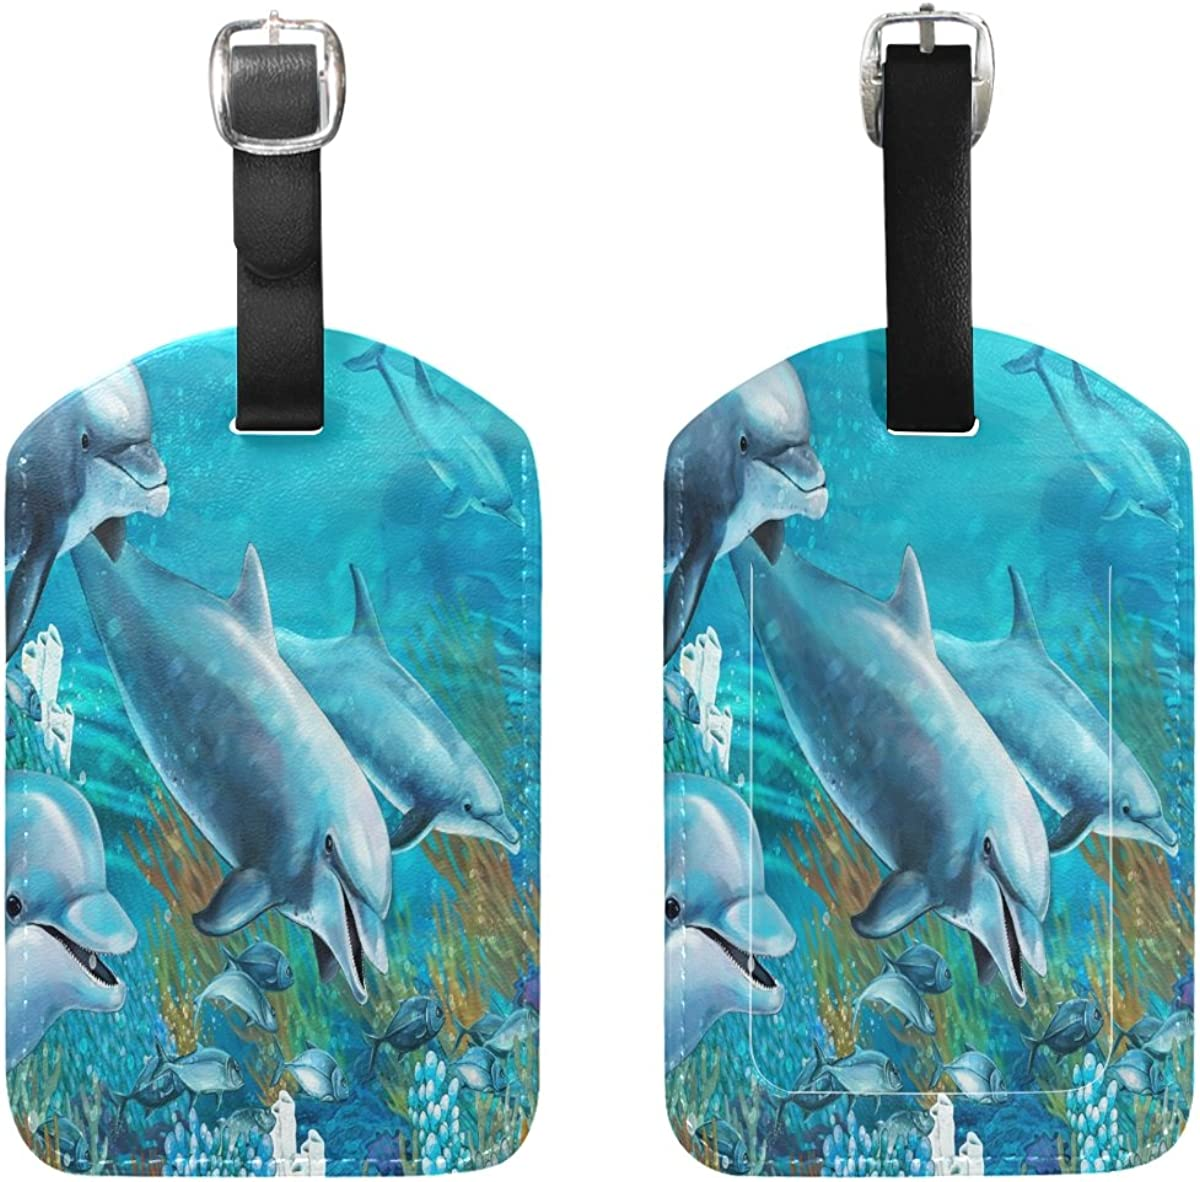 Dolphins Ocean Travel Tags For Suitcase Bag Accessories 2 Pack Luggage Tags